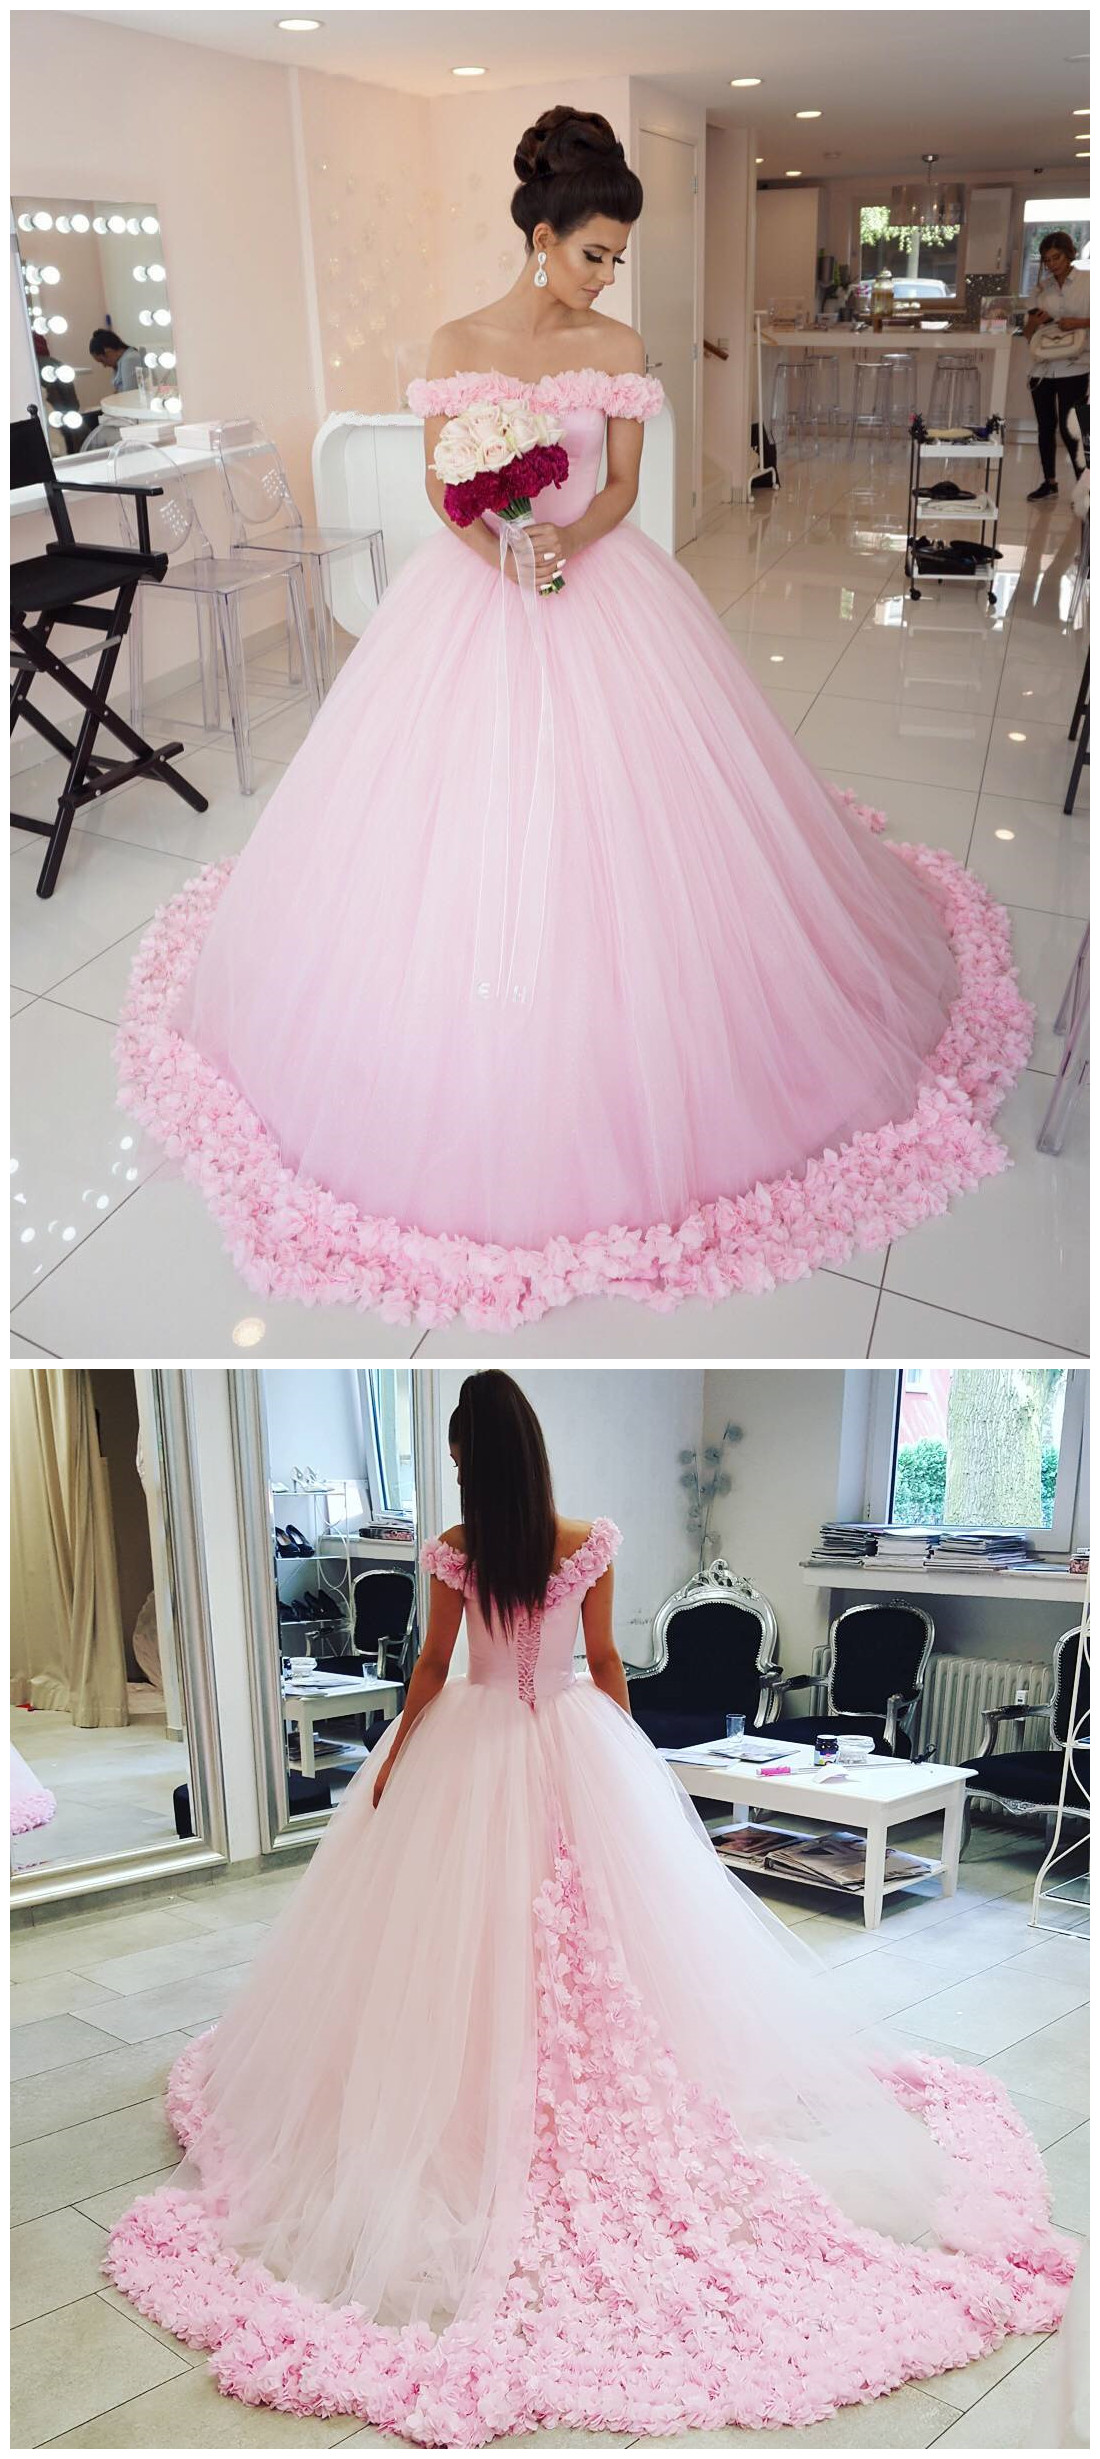 New Arrival Prom Dressmodest Prom Dresssparkly Flower Wedding